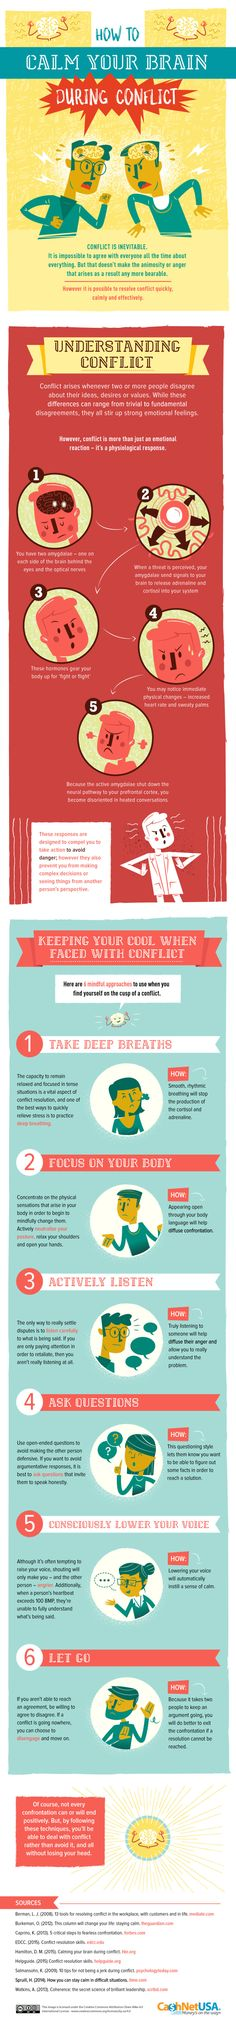 how-to-calm-brain-V2.jpg